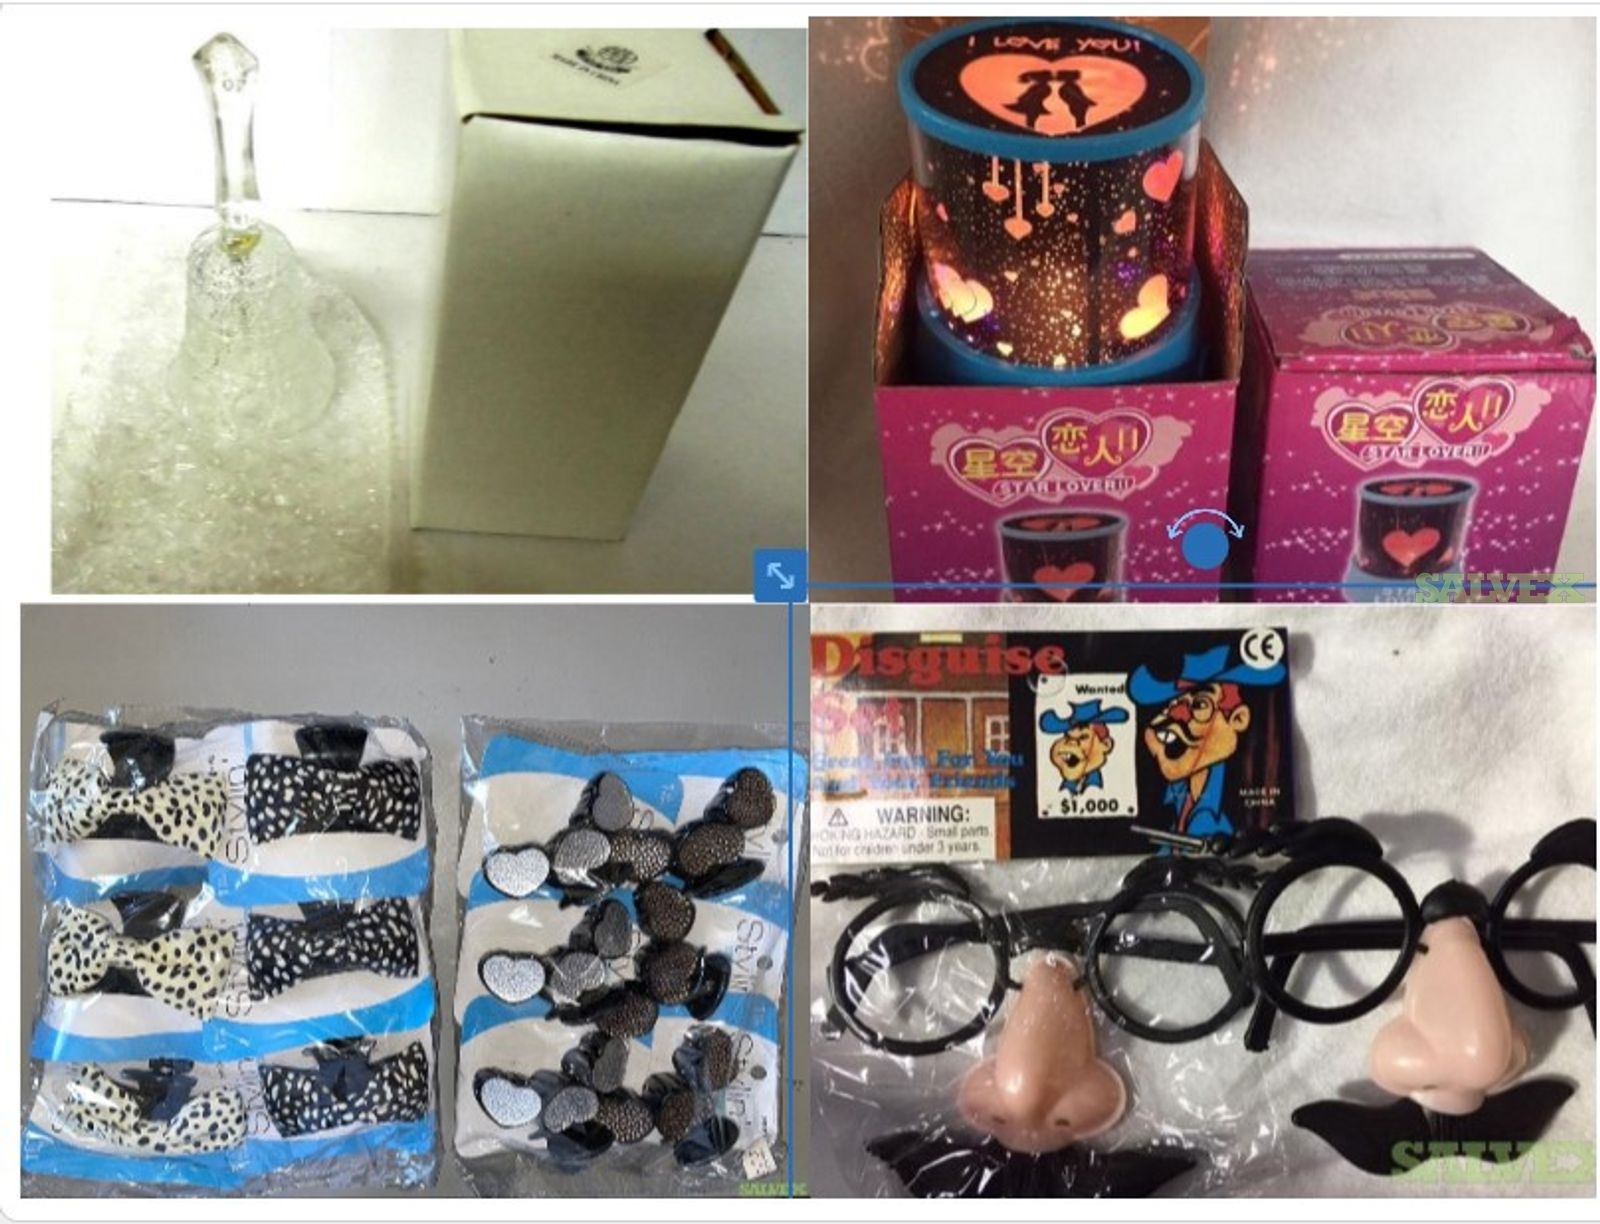 Dollar Store Merchandise : Battery Operated Lamp Hearts and Stars, Disguise Costume Funny Face Glasses, Glass Bells, Hair Accessories For Adults And Children (9200 Units) in NY